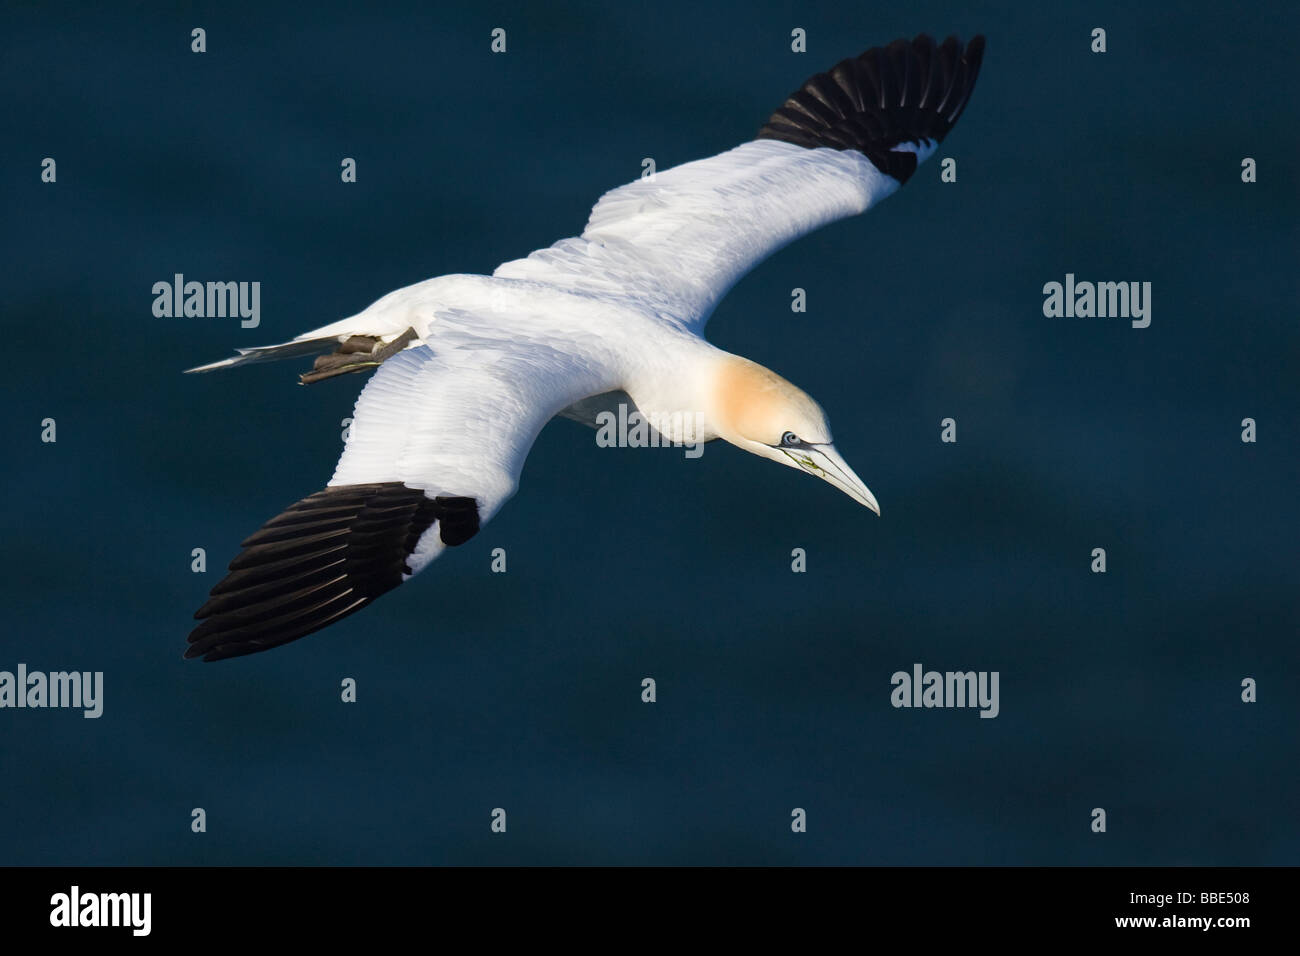 Adult Northern Gannet (Morus bassanus) in flight with the ocean in the background - Stock Image